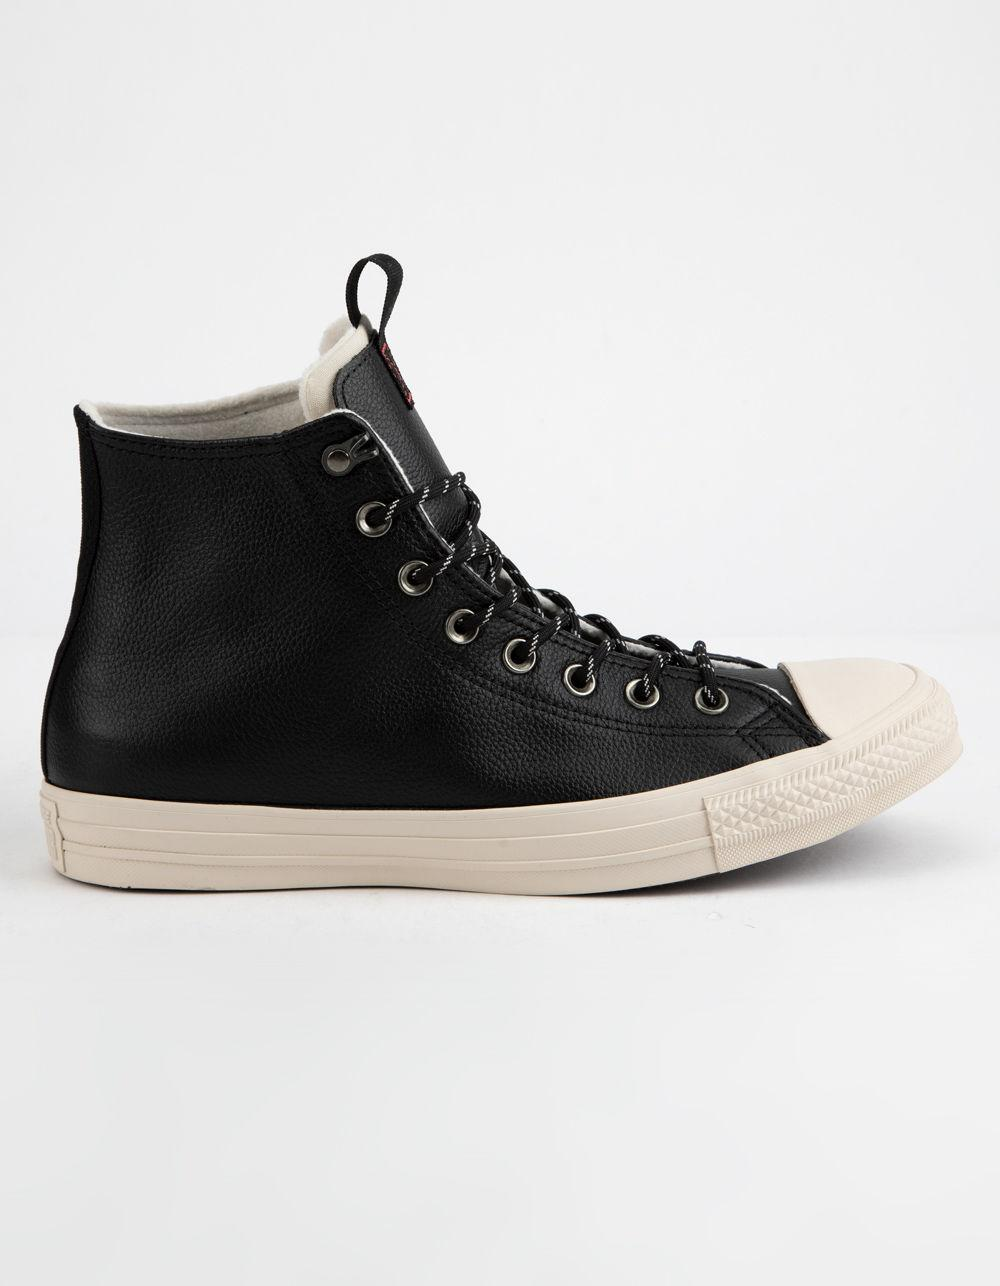 6eac9479a72f Lyst - Converse Chuck Taylor All Star Leather Black   Driftwood High ...